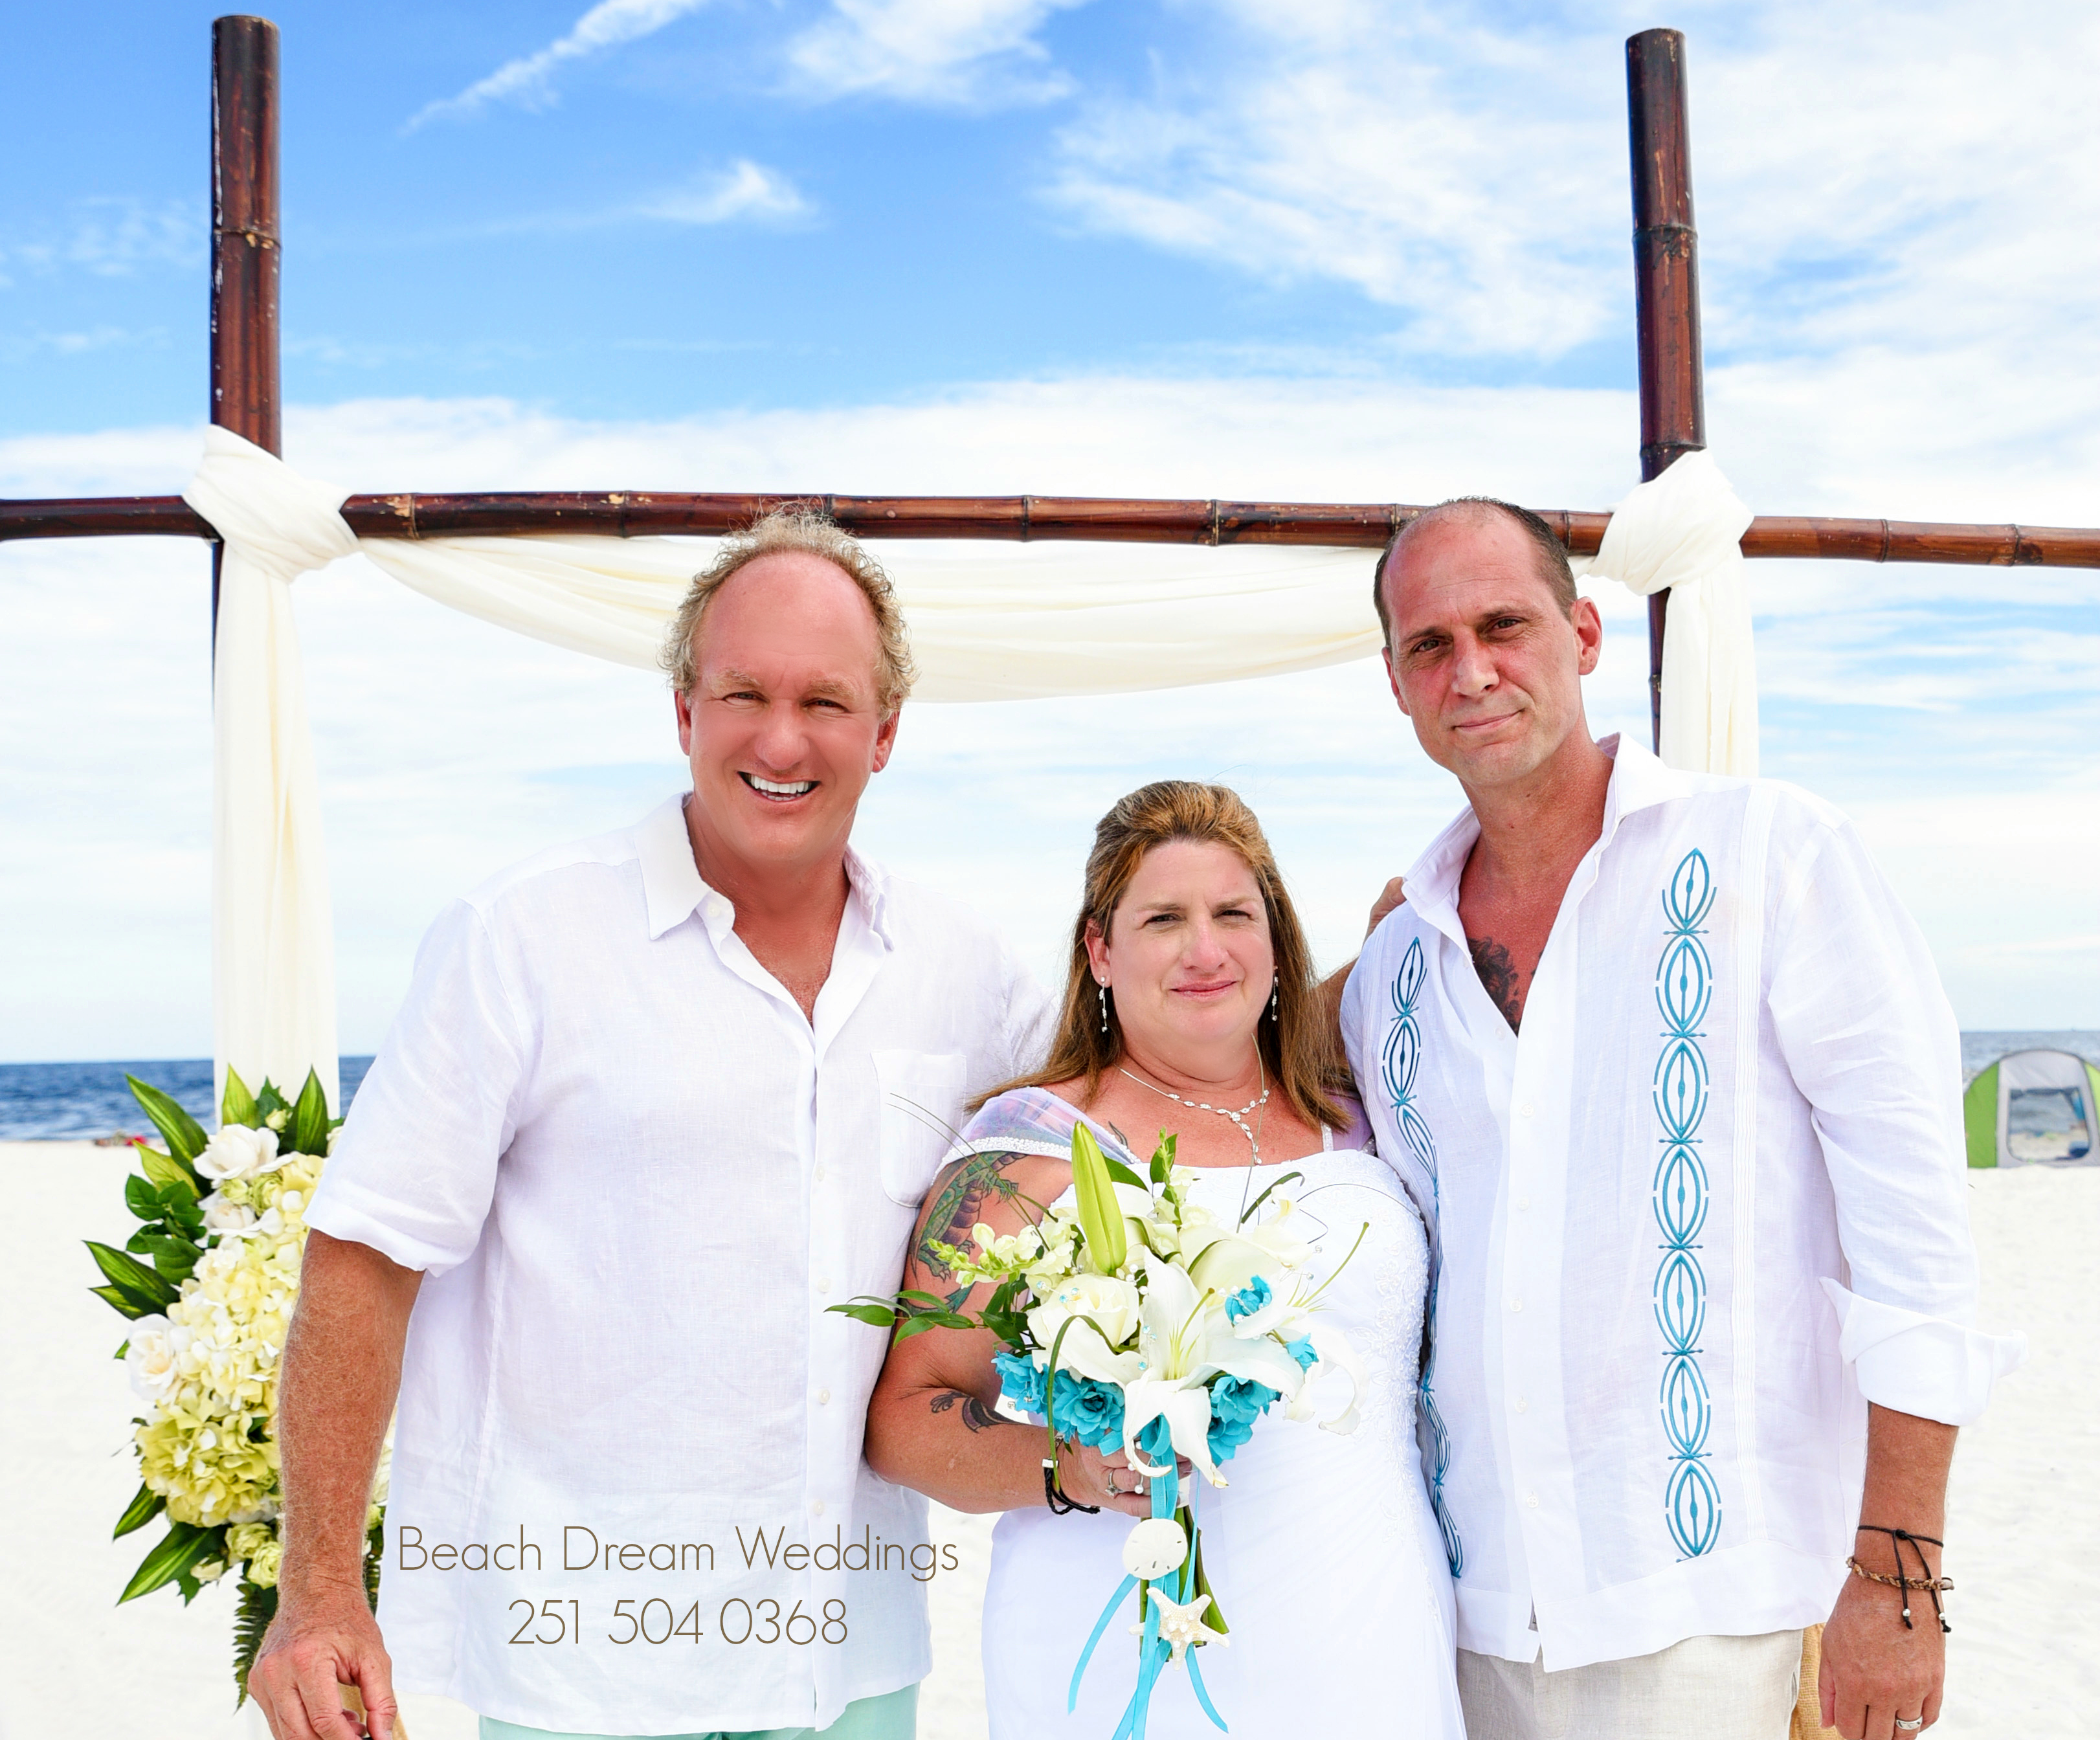 Beach Wedding Photos Offered Free